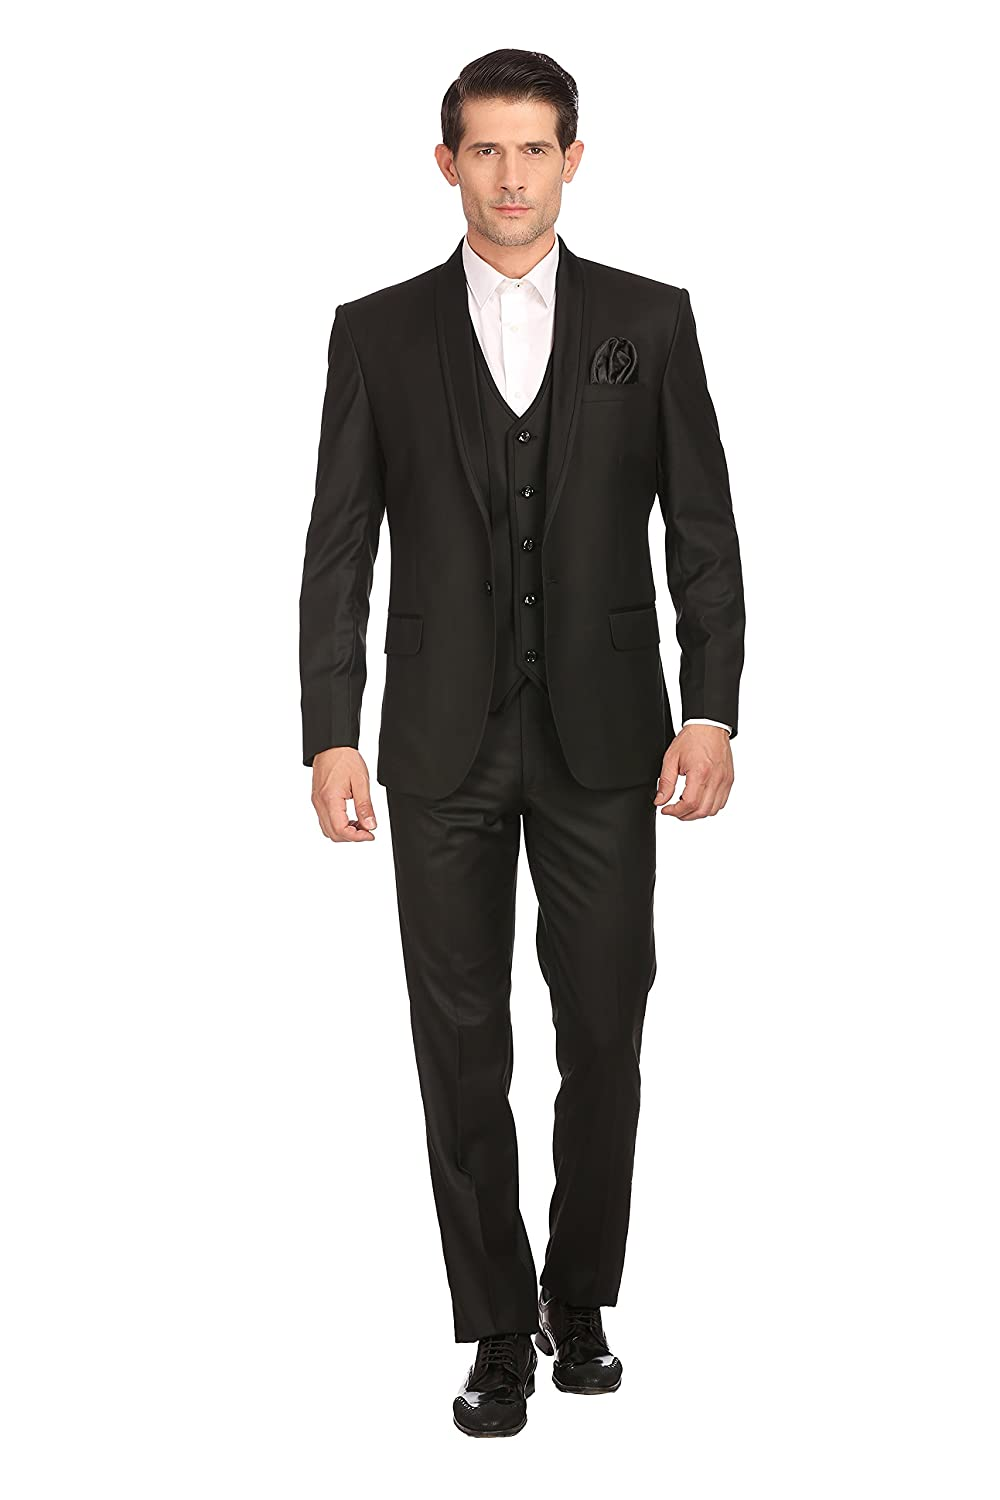 Satin Shawl Collar Partywear Men's 3 Piece Suit